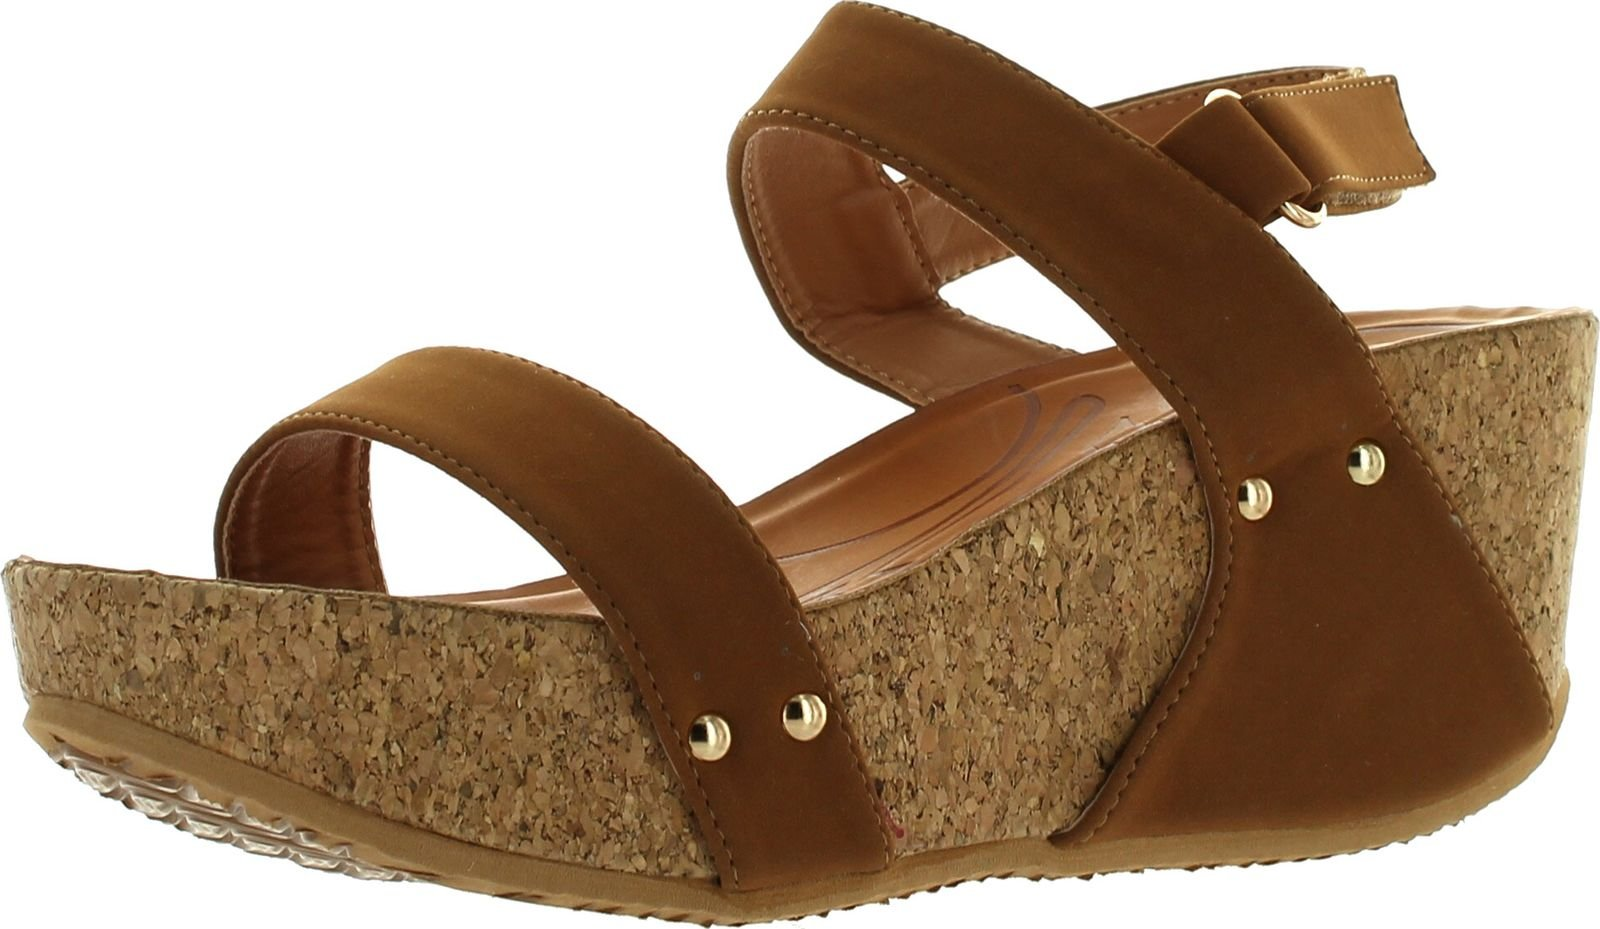 Forever Link Womens Freya-34 Fashion Stud Embellished Low Top Wedge Sandals,Tan,7